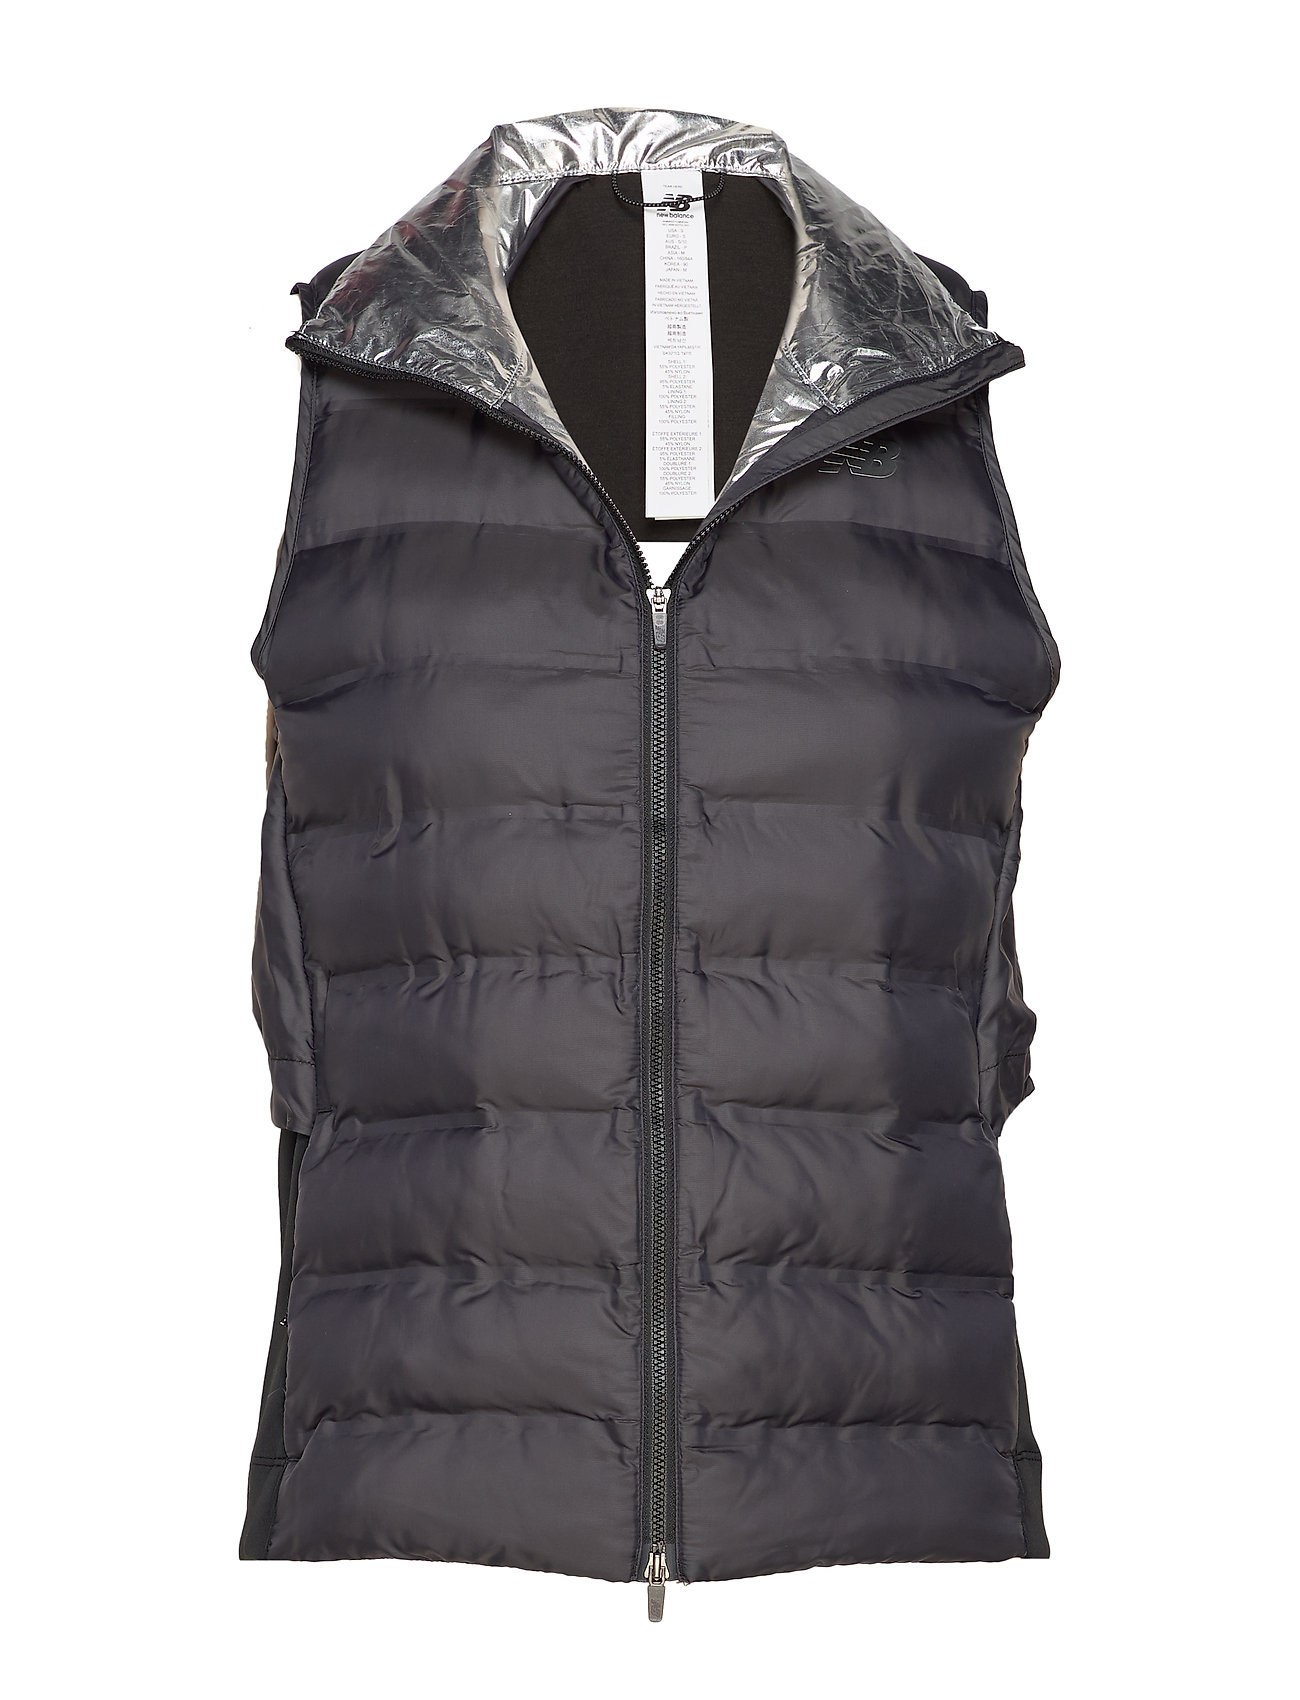 New Balance NB RADIANT HEAT VEST - BLACK